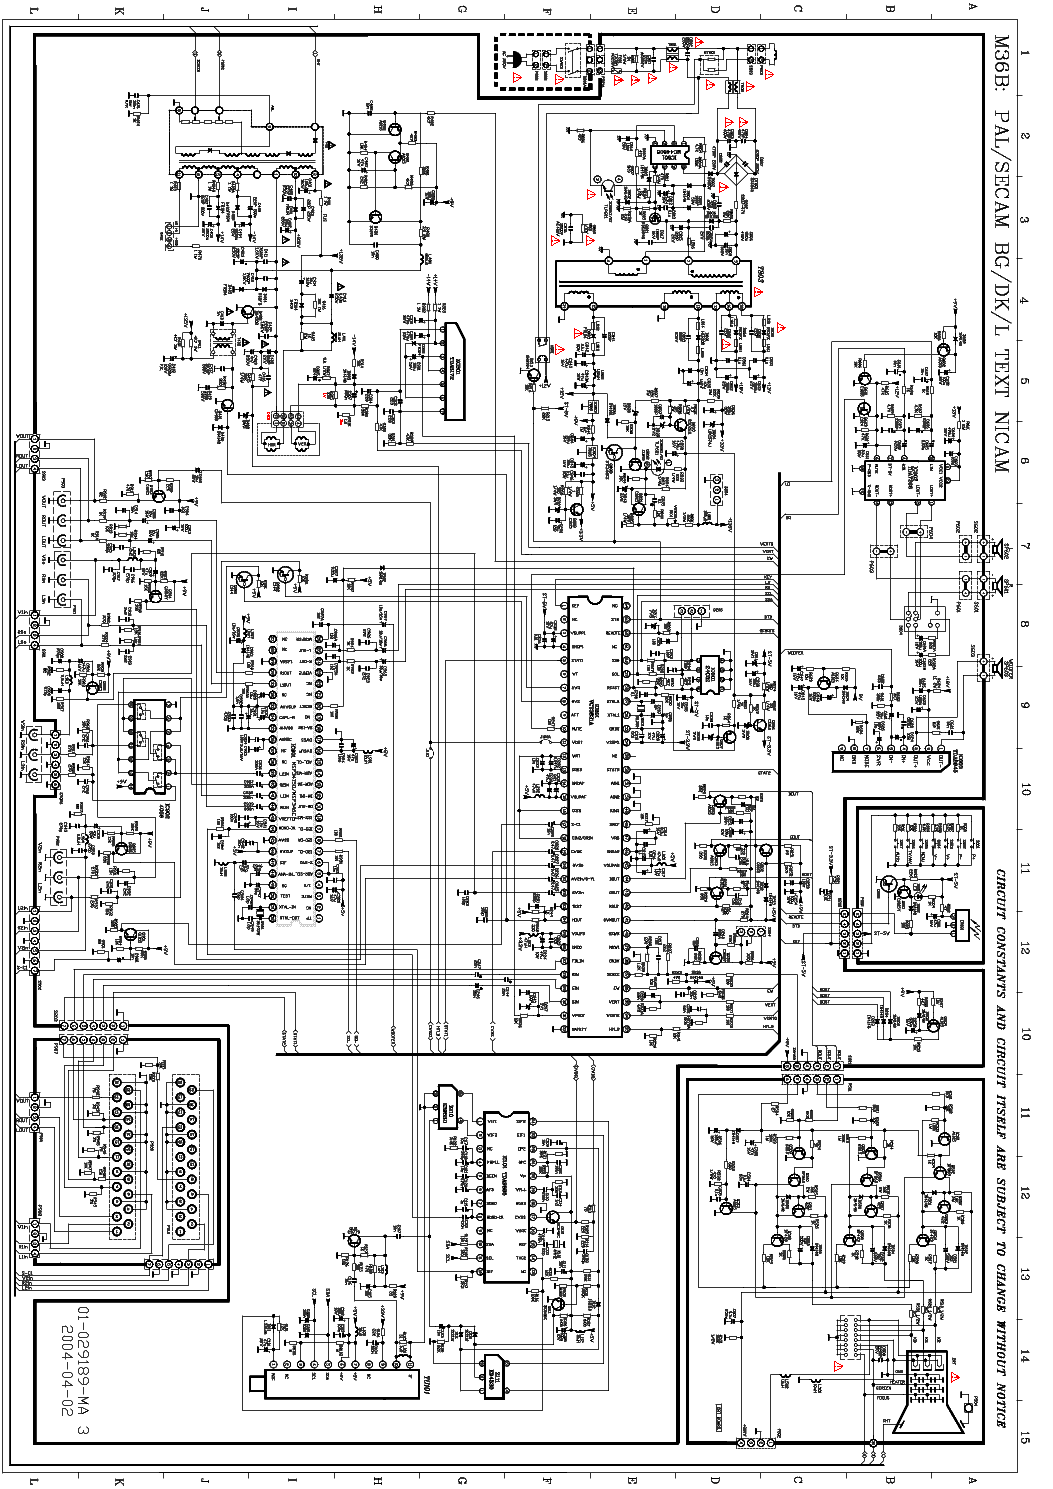 Tcl 2170 2180 2188 2190 Sch Service Manual Download  Schematics  Eeprom  Repair Info For